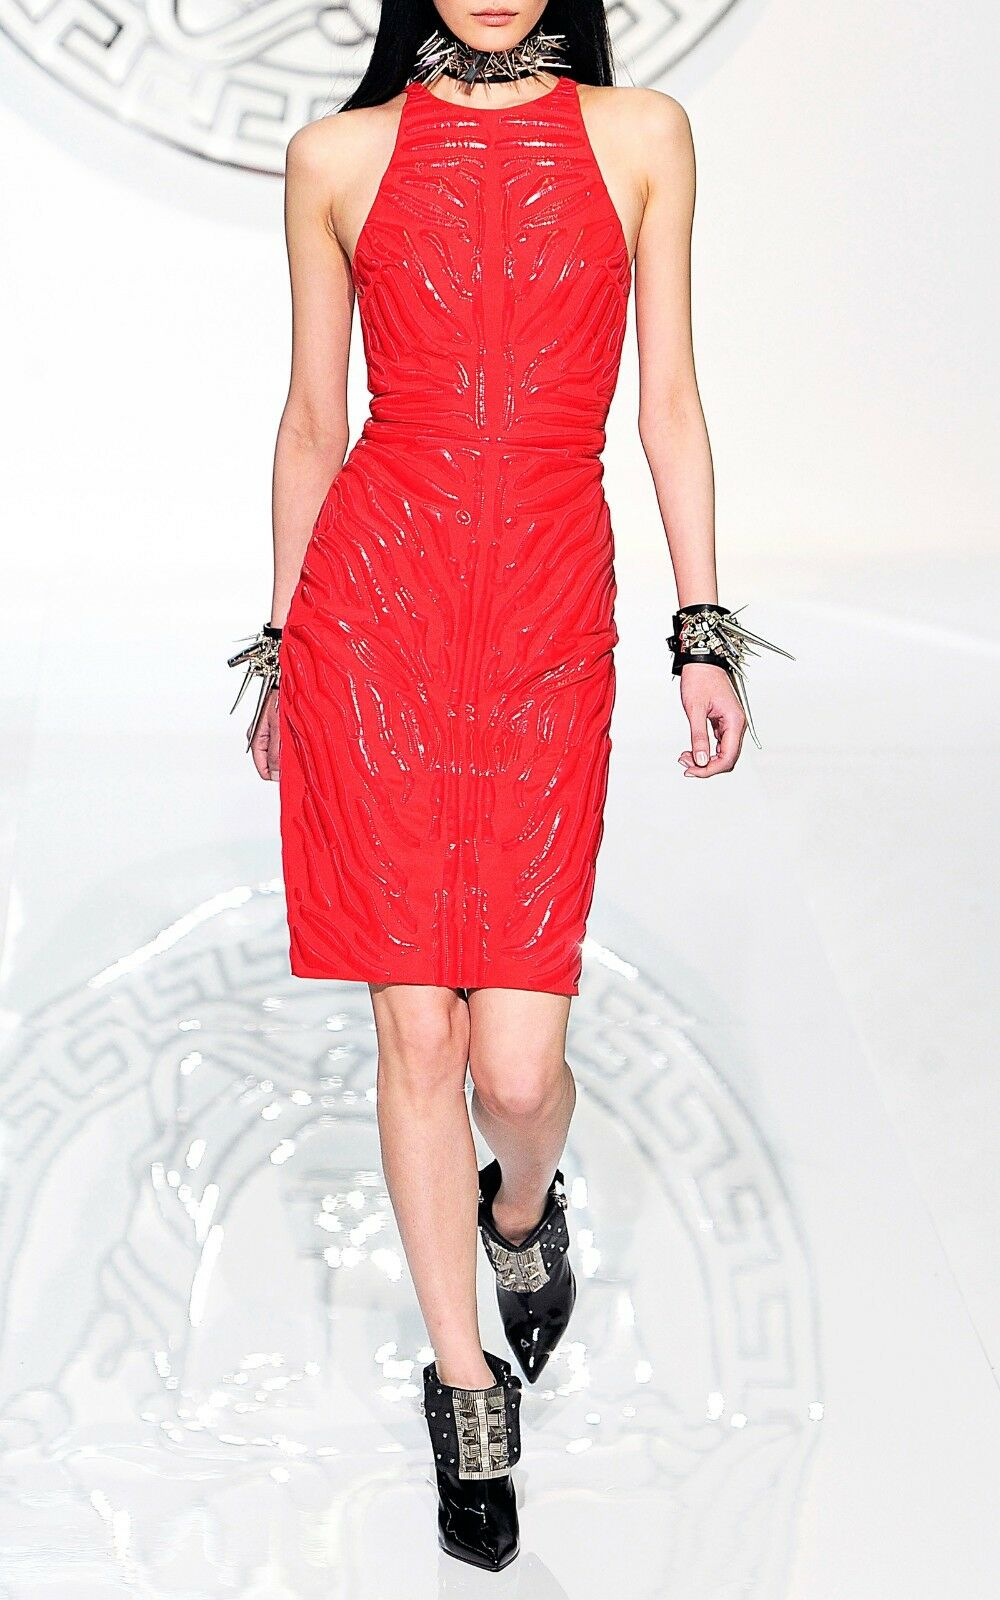 4,875 New Versace Red Crepe Cady Sheath Dress Dress Dress With Vinyl Animal Stripes 38 a1b0c6